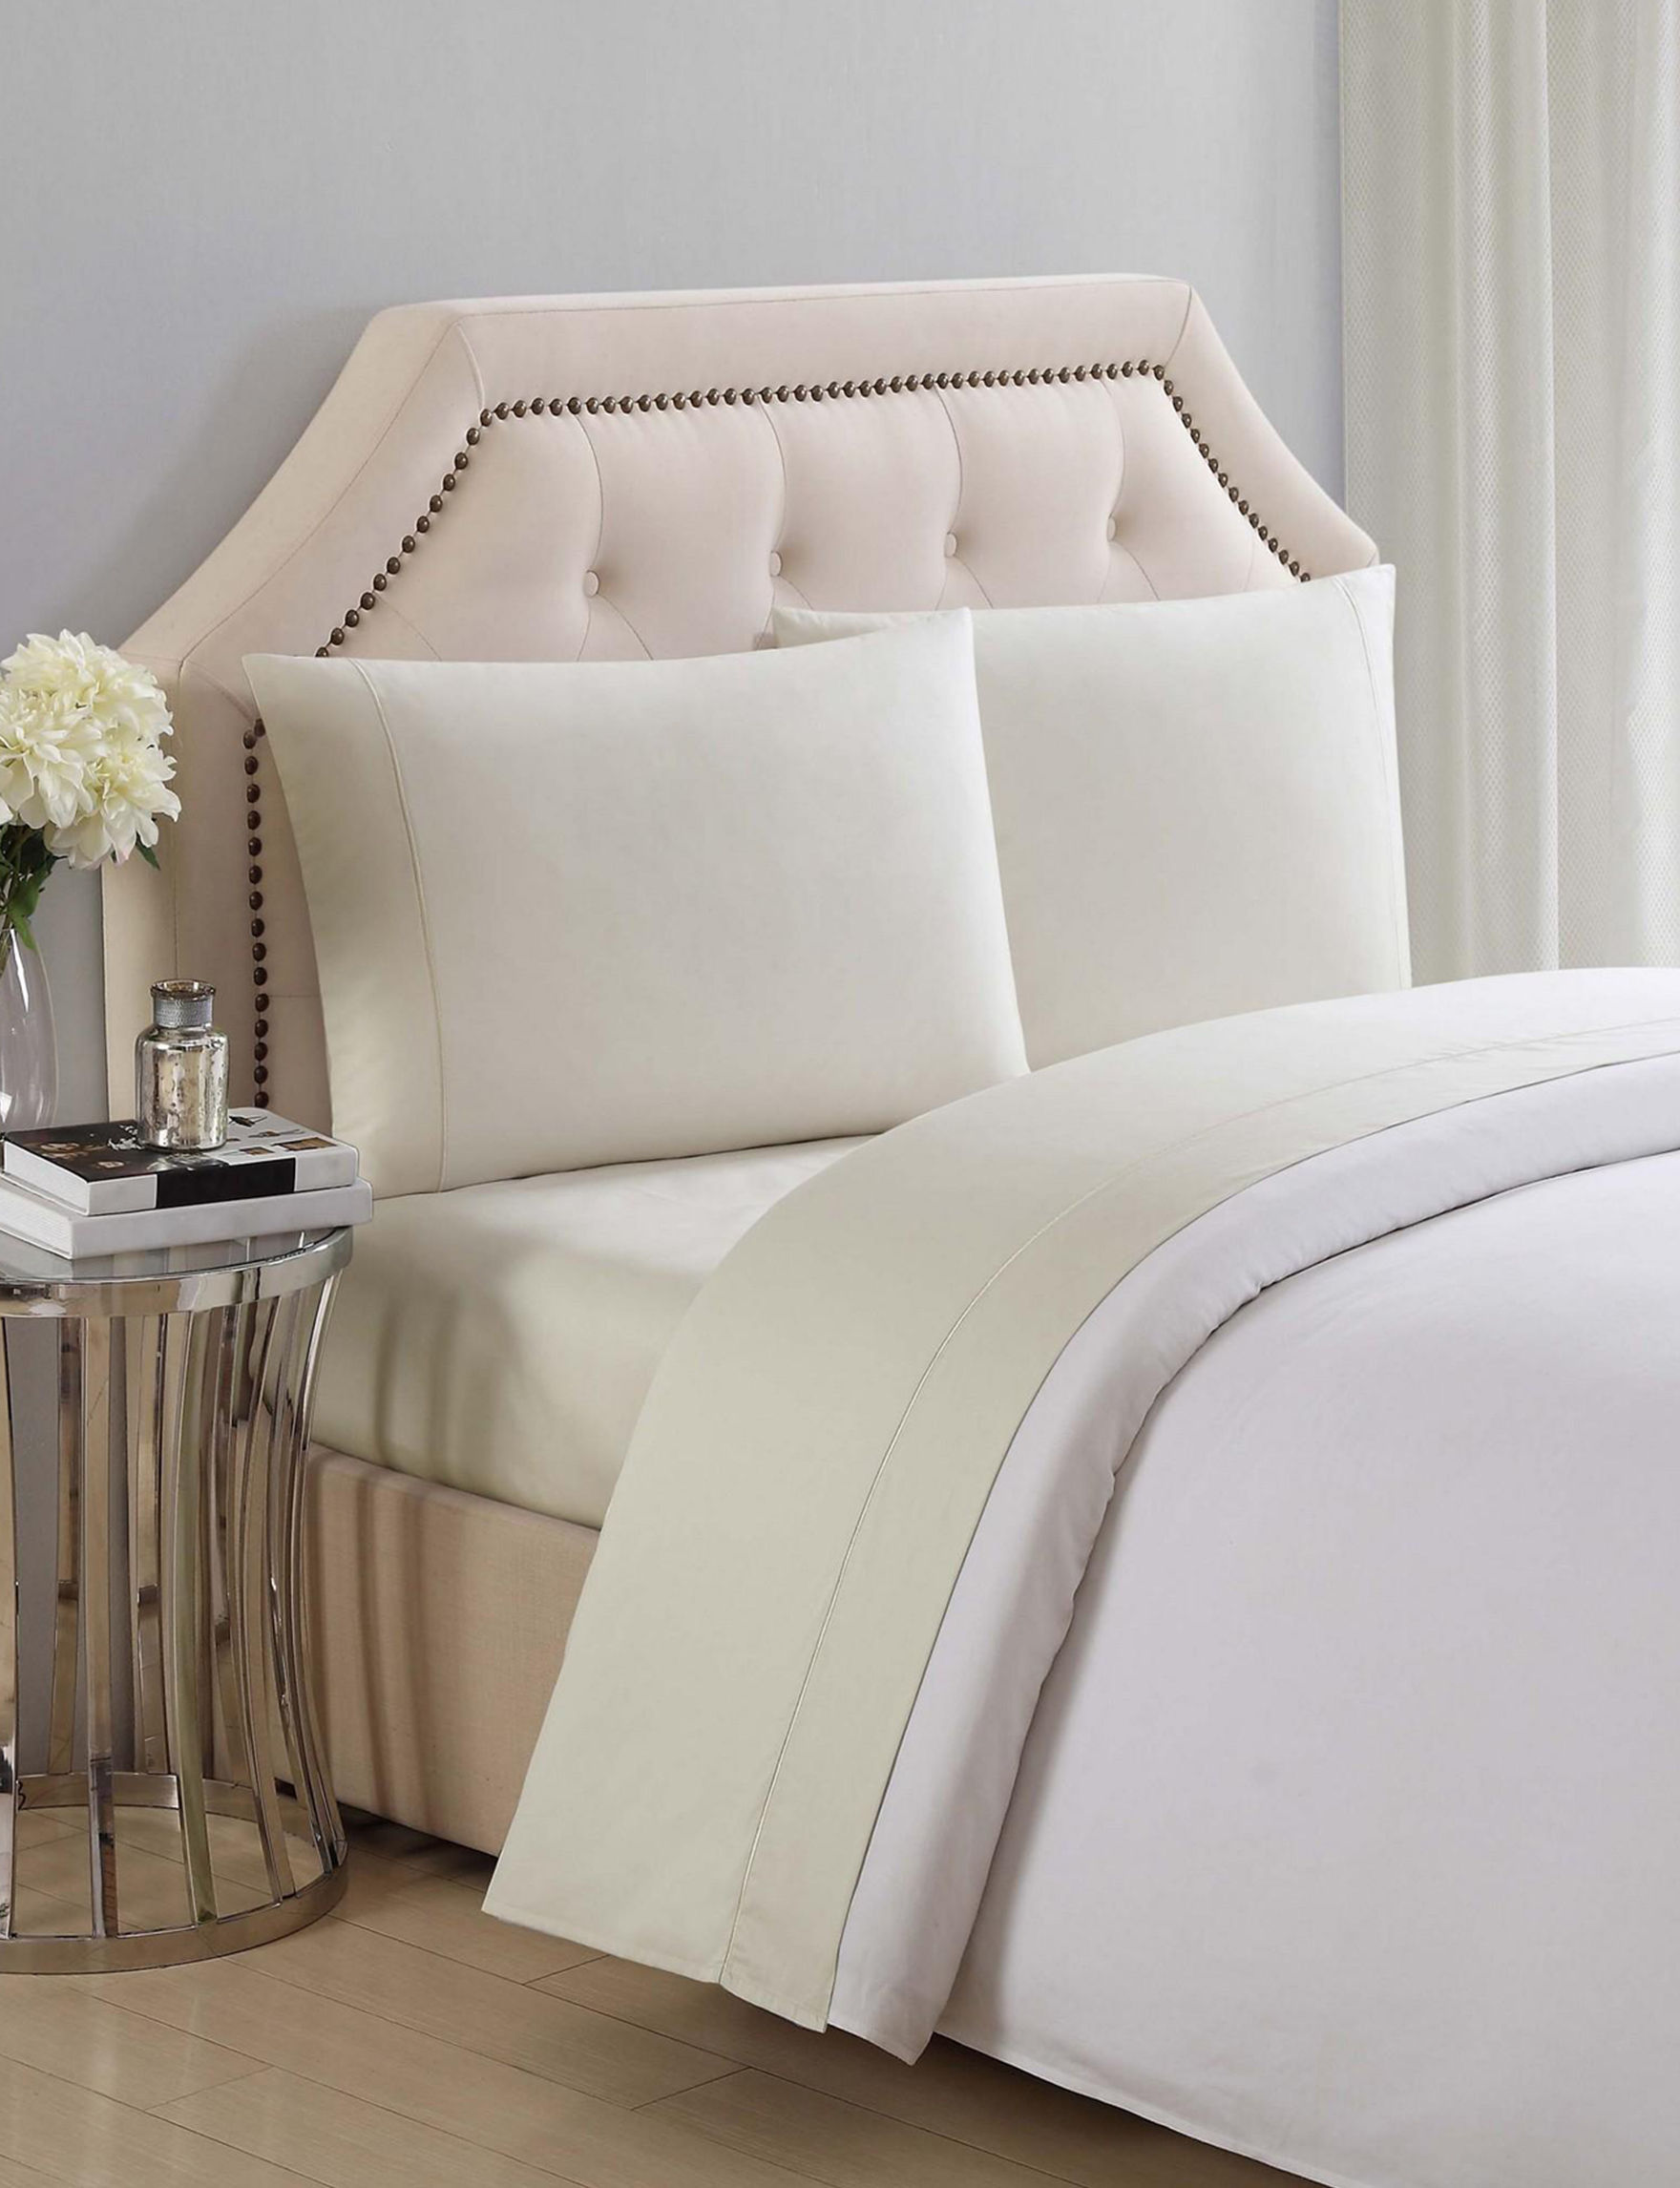 Charisma Beige Sheets & Pillowcases